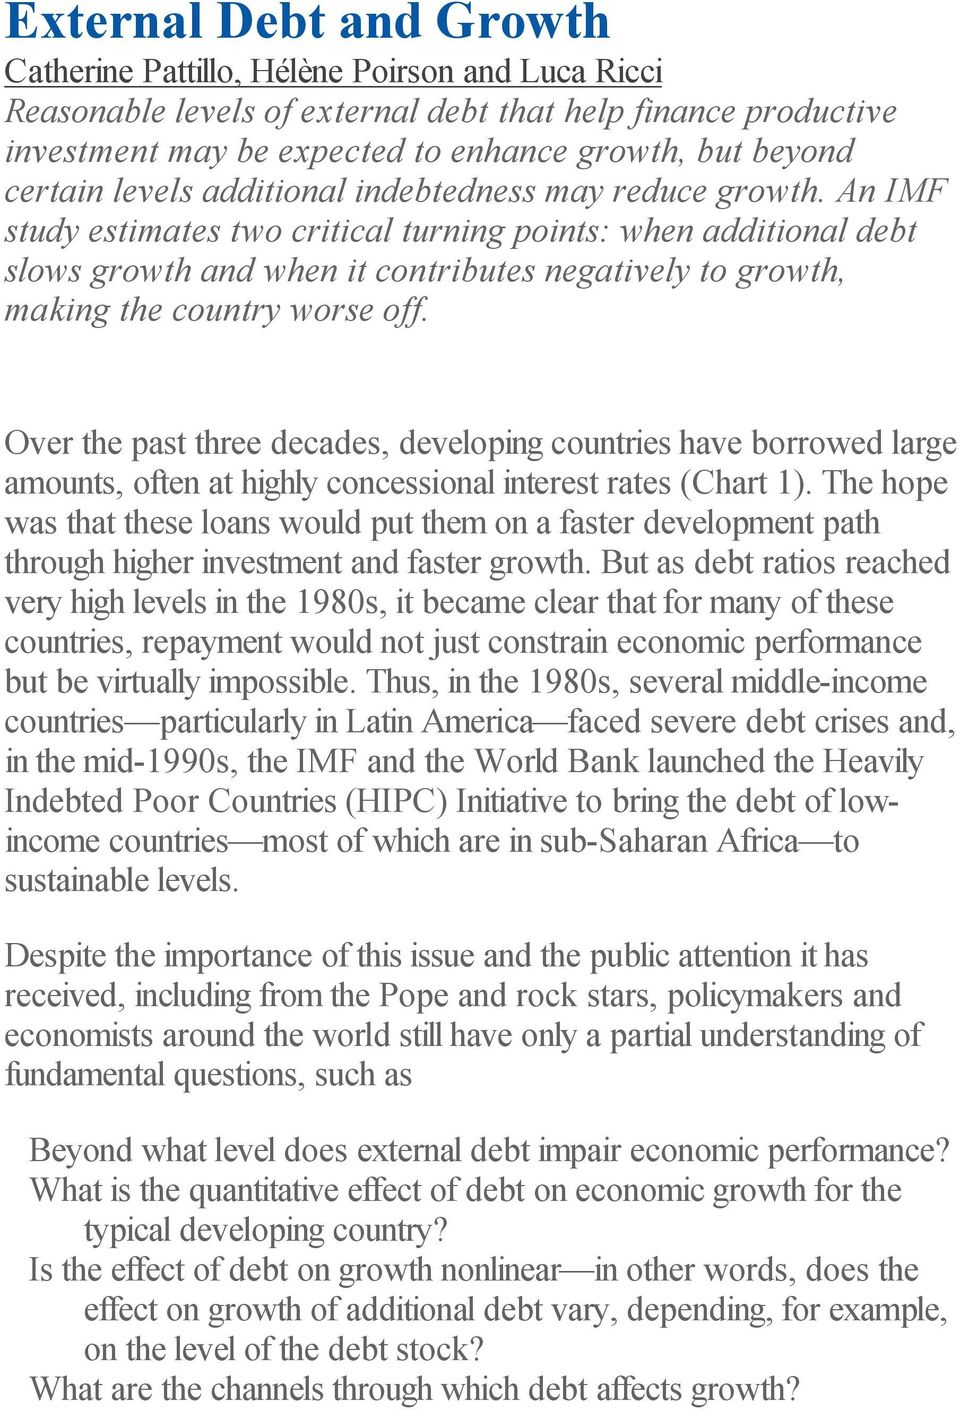 An IMF study estimates two critical turning points: when additional debt slows growth and when it contributes negatively to growth, making the country worse off.